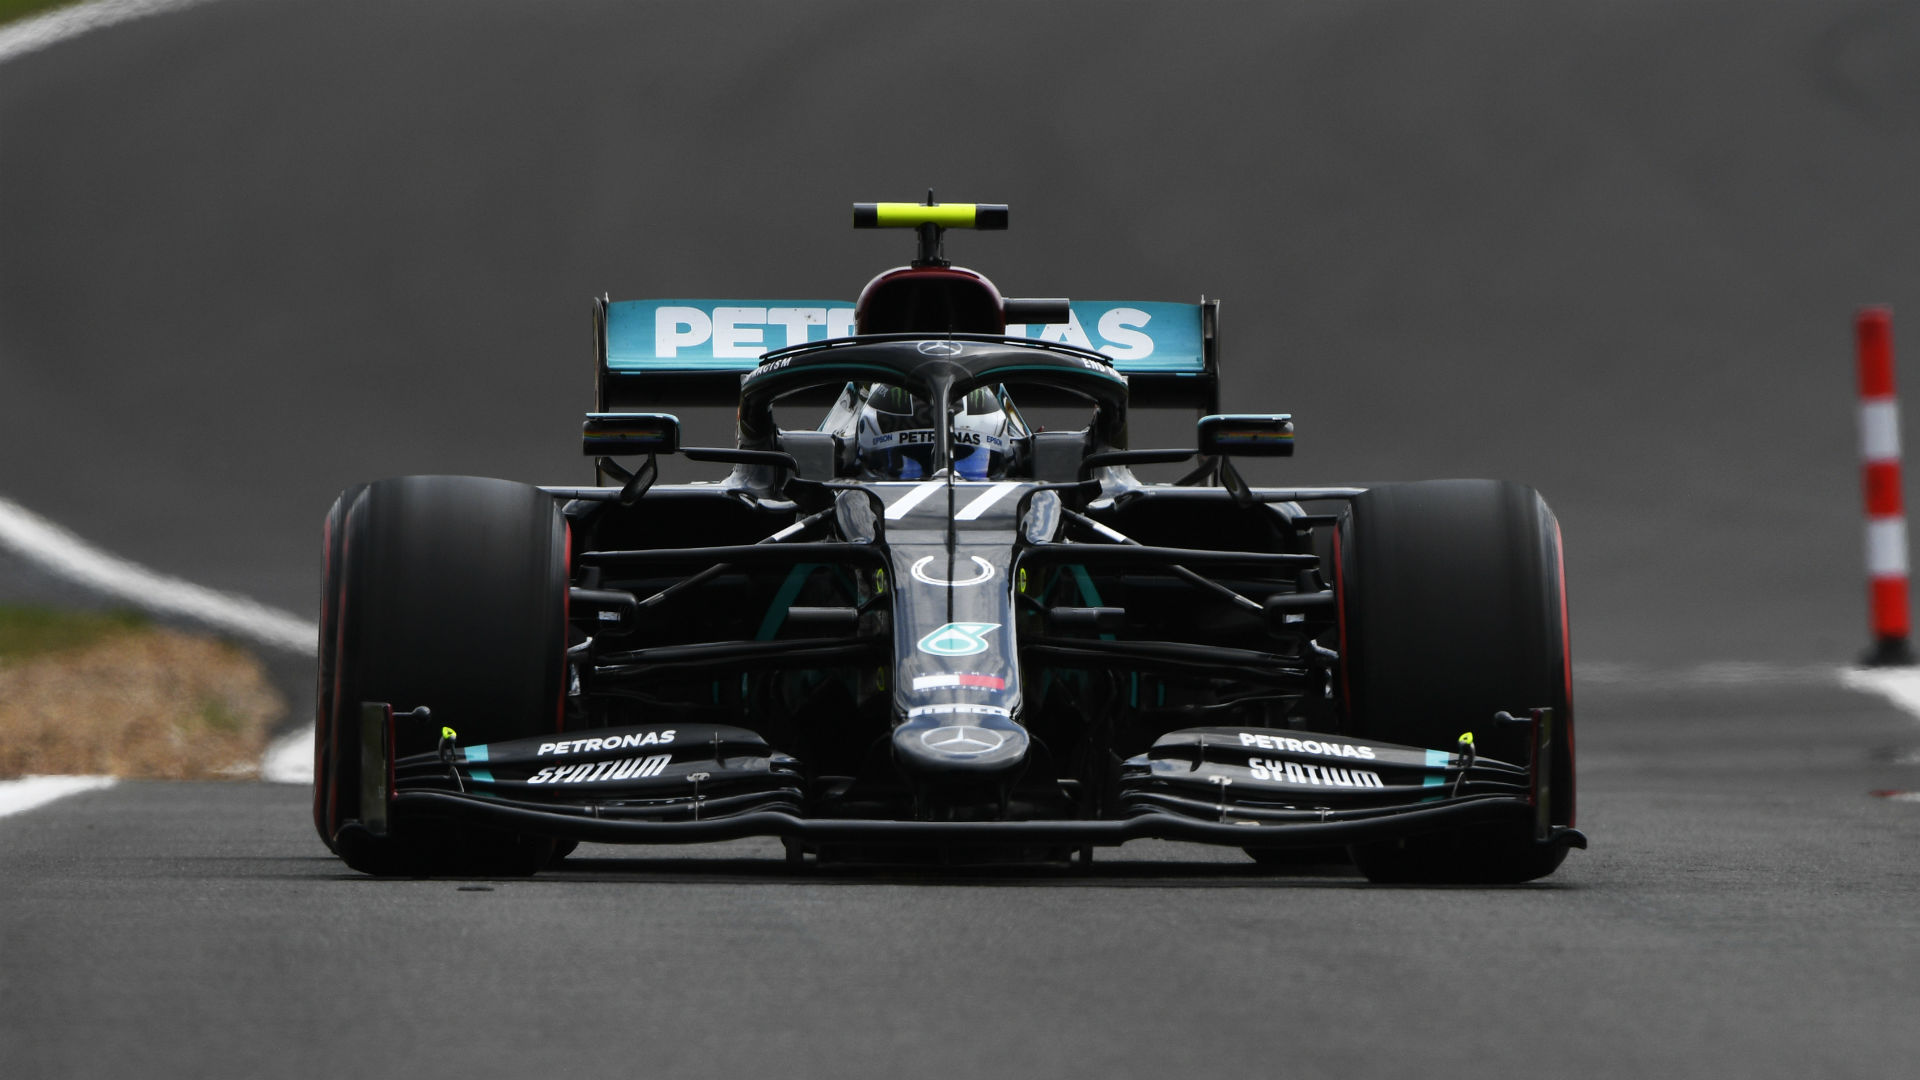 F1 2020: Bottas pips Hamilton to pole for 70th Anniversary GP